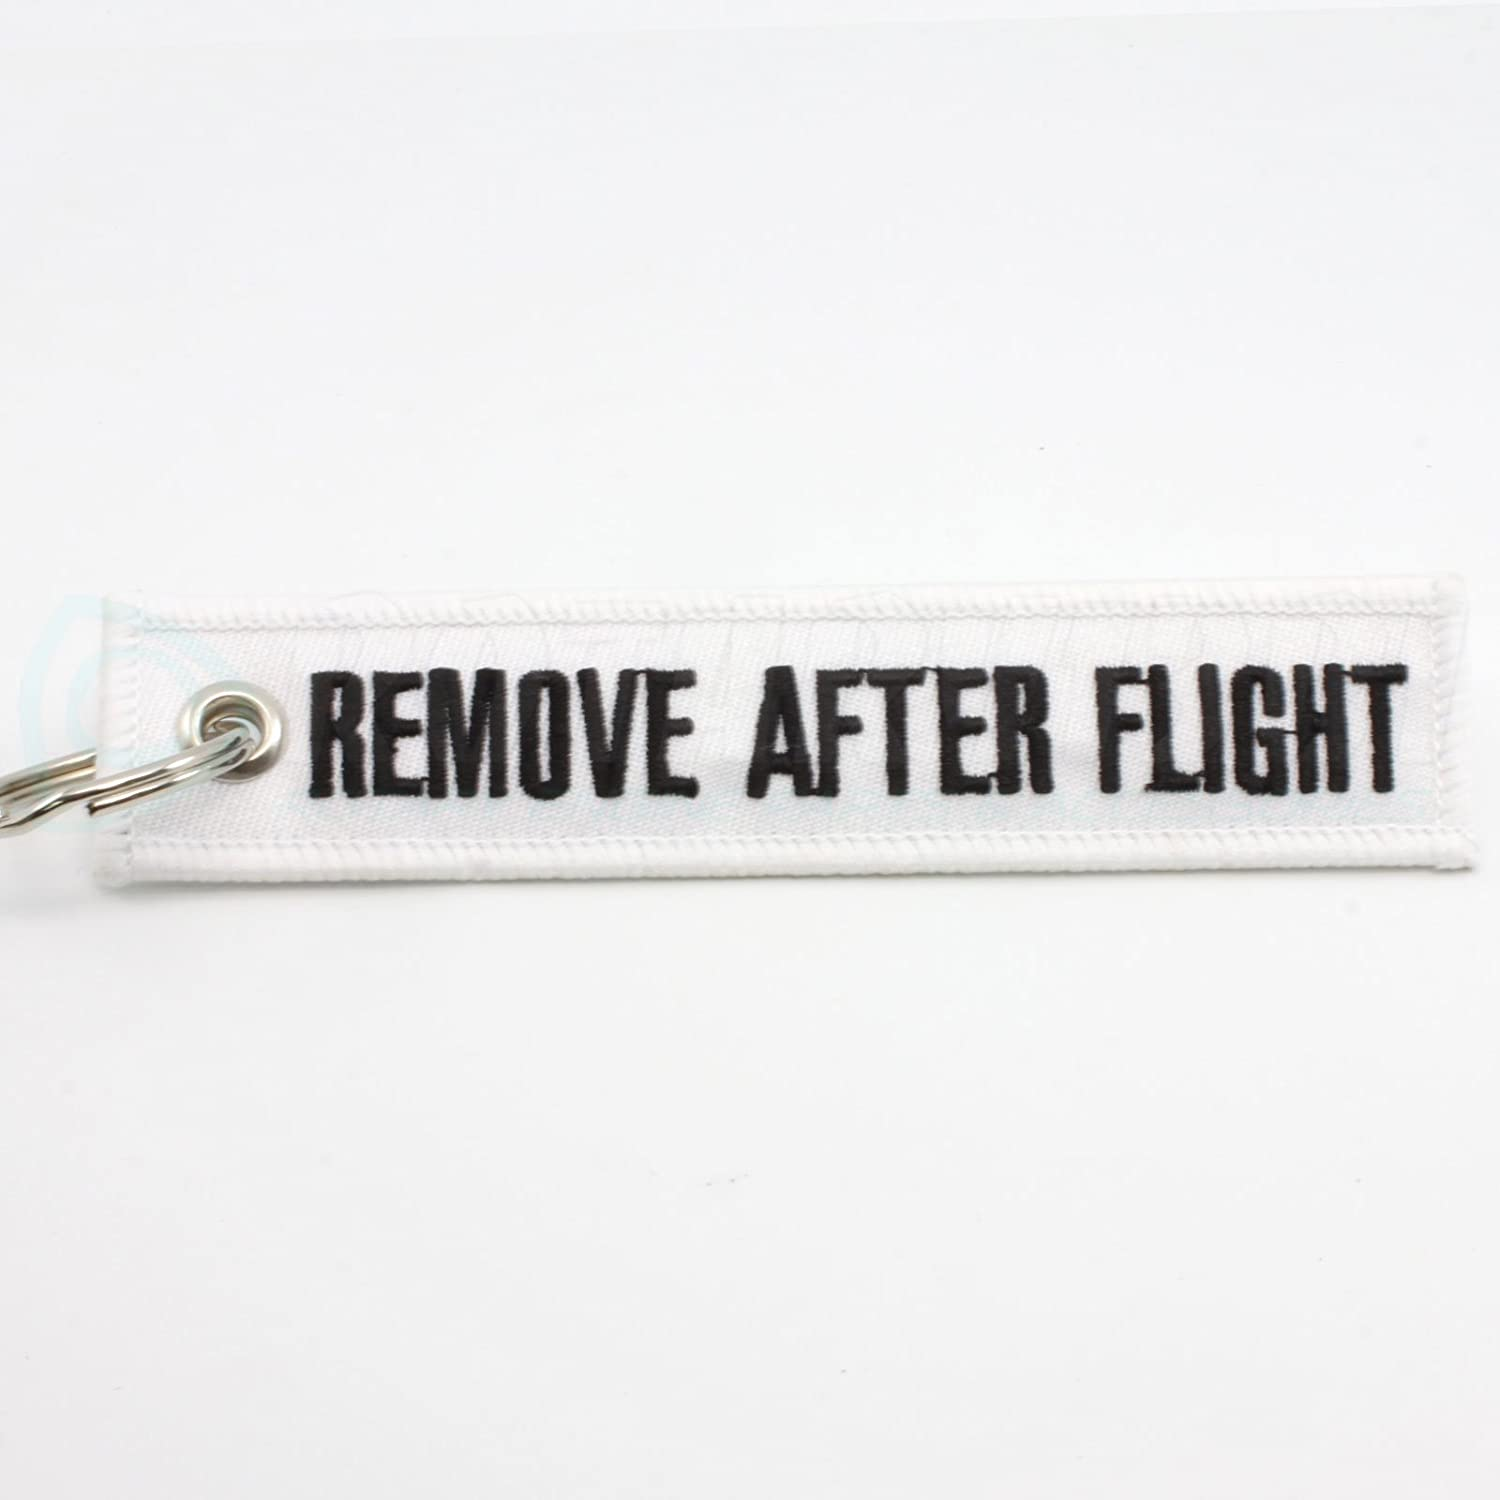 Keychain White Rotary13B1 Remove After Flight